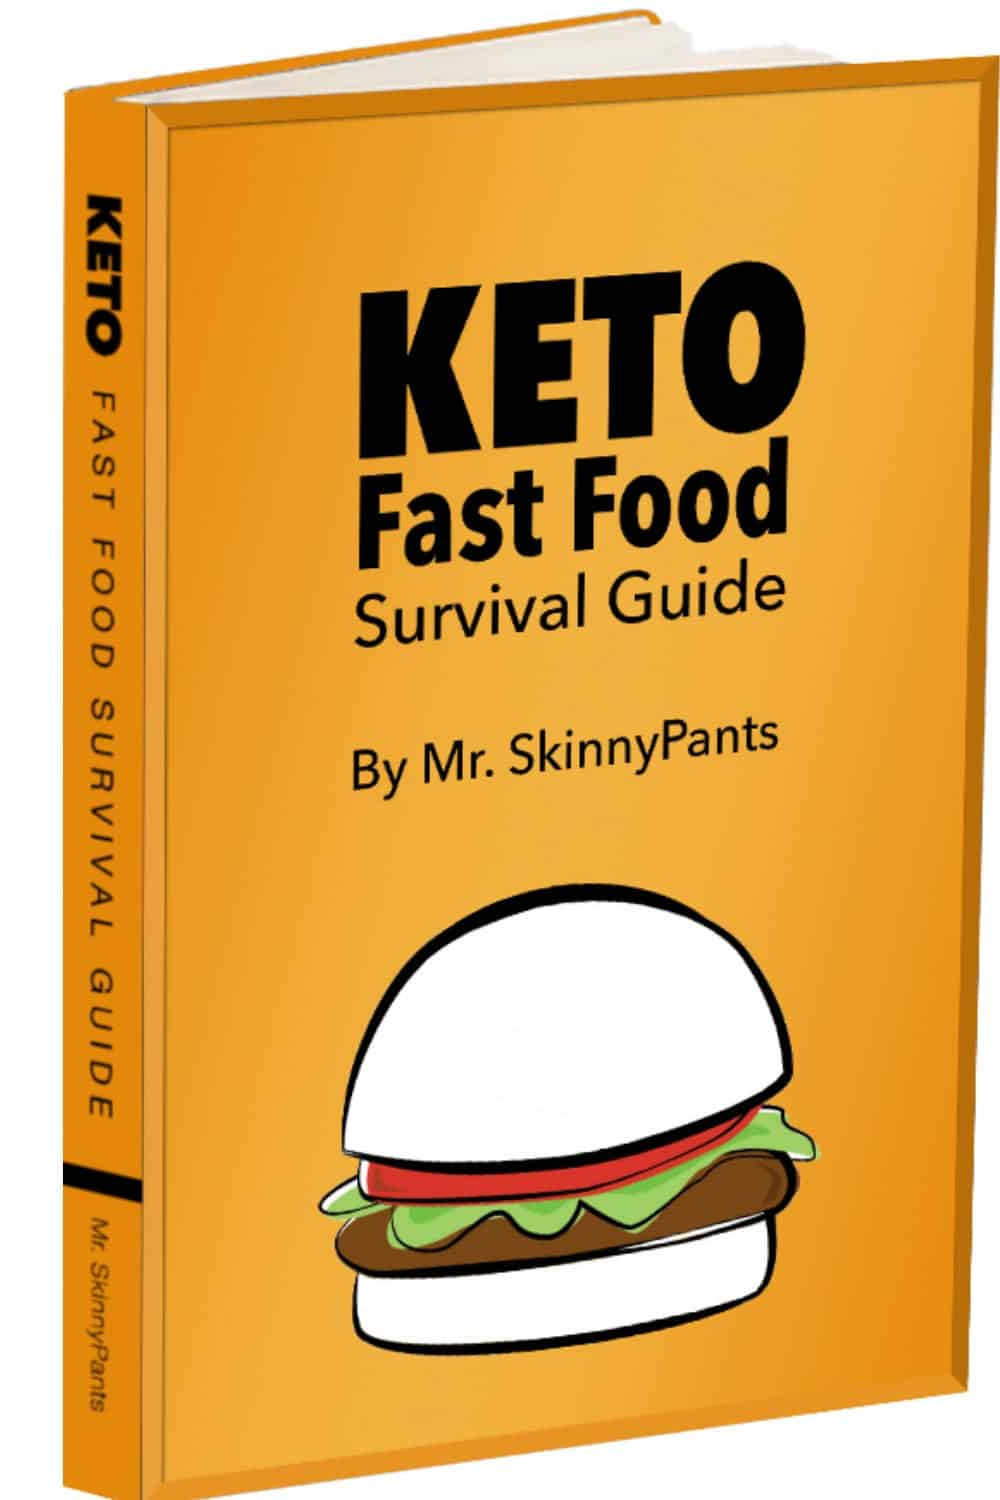 Keto Fast Food Survival Guide Book